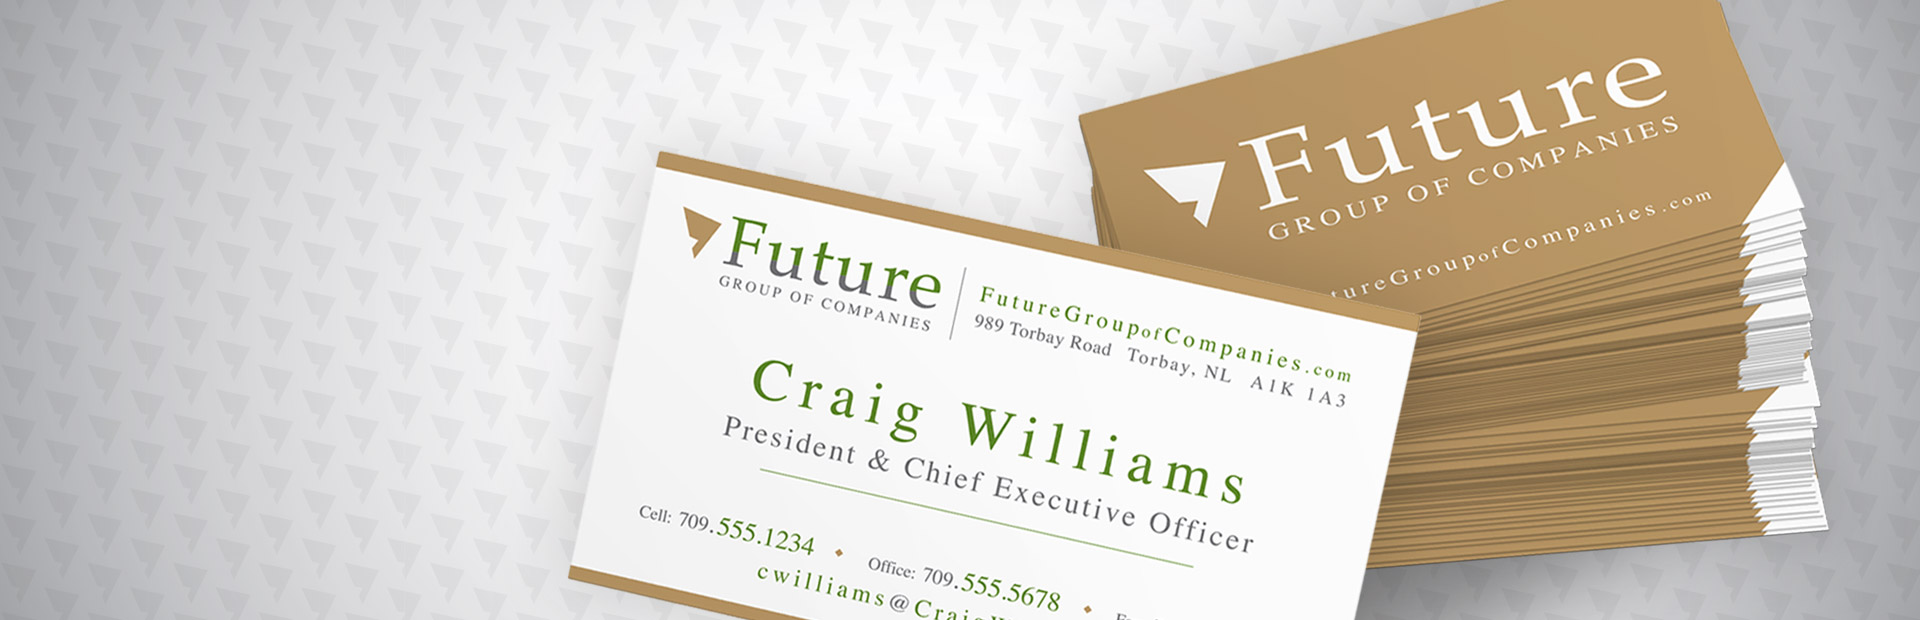 Business Cards for Future Group of Companies - Dc Design House